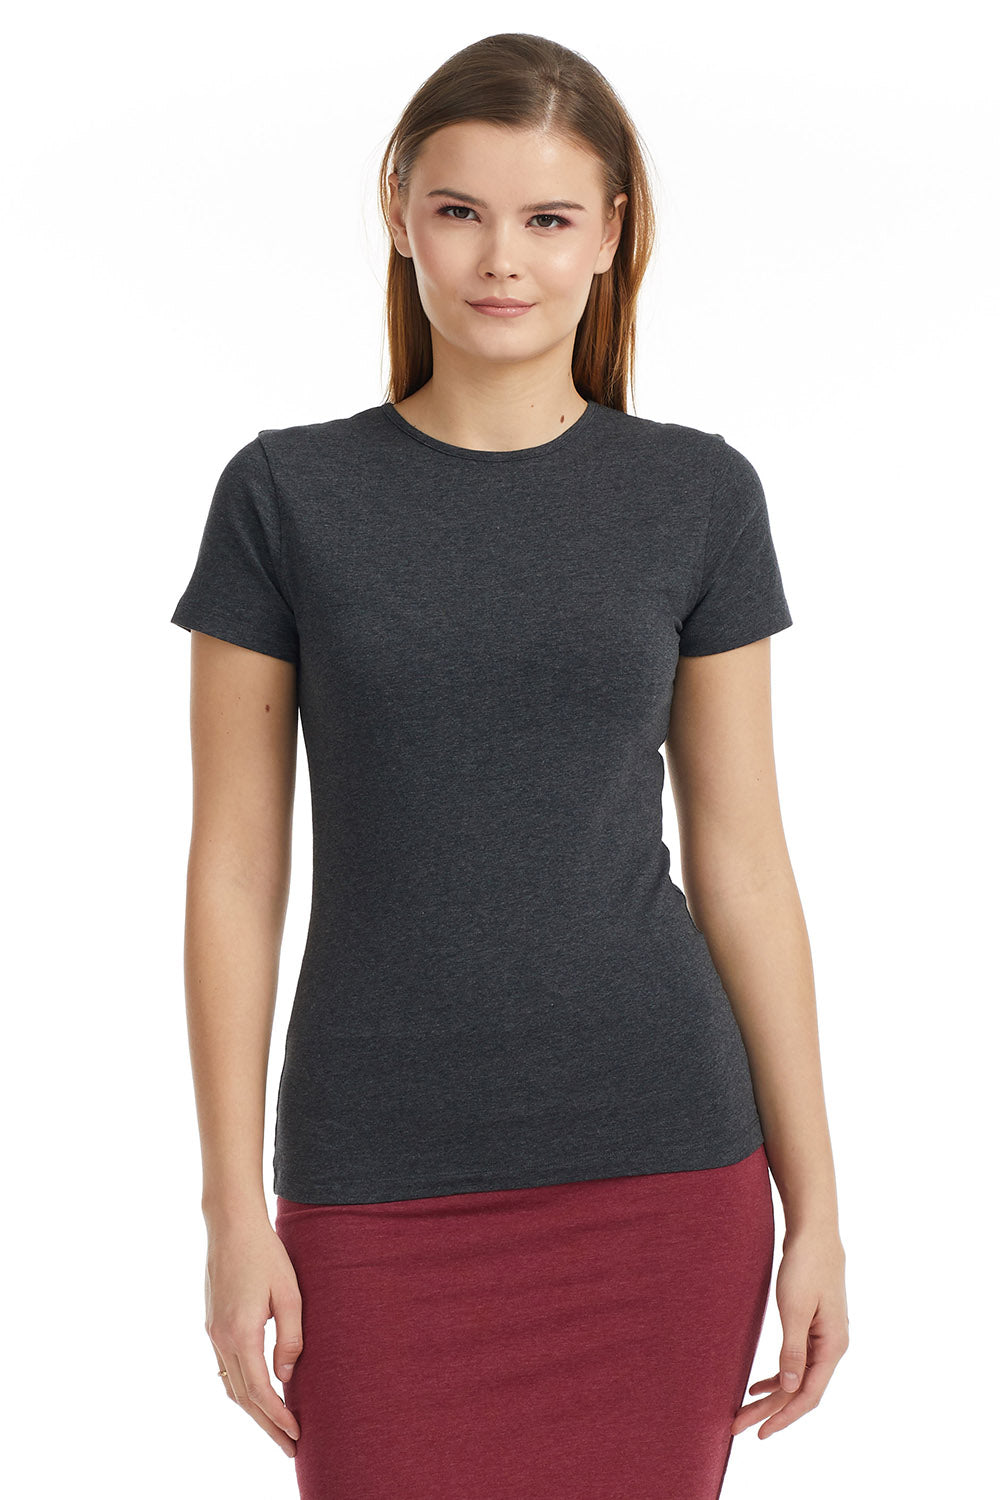 Esteez Short Sleeve Cotton Lycra T-Shirt for WOMEN – CHARCOAL